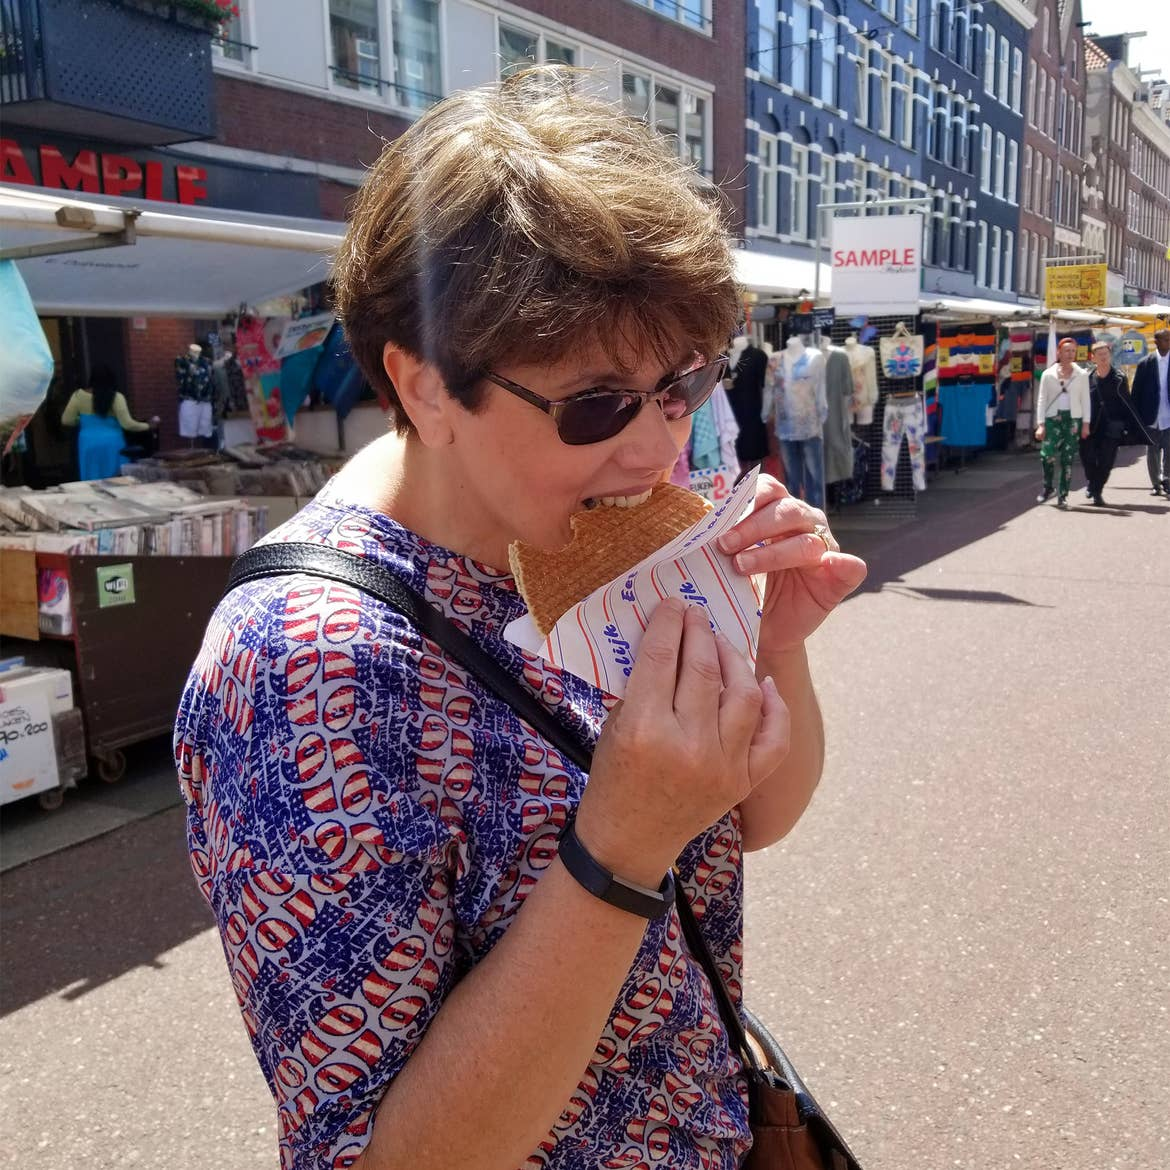 A caucasian woman wearing a patriotic-patterned shirt eats a stroopwaffle in the walkway of the Albert de Cuyp Market in Amsterdam, Netherlands.